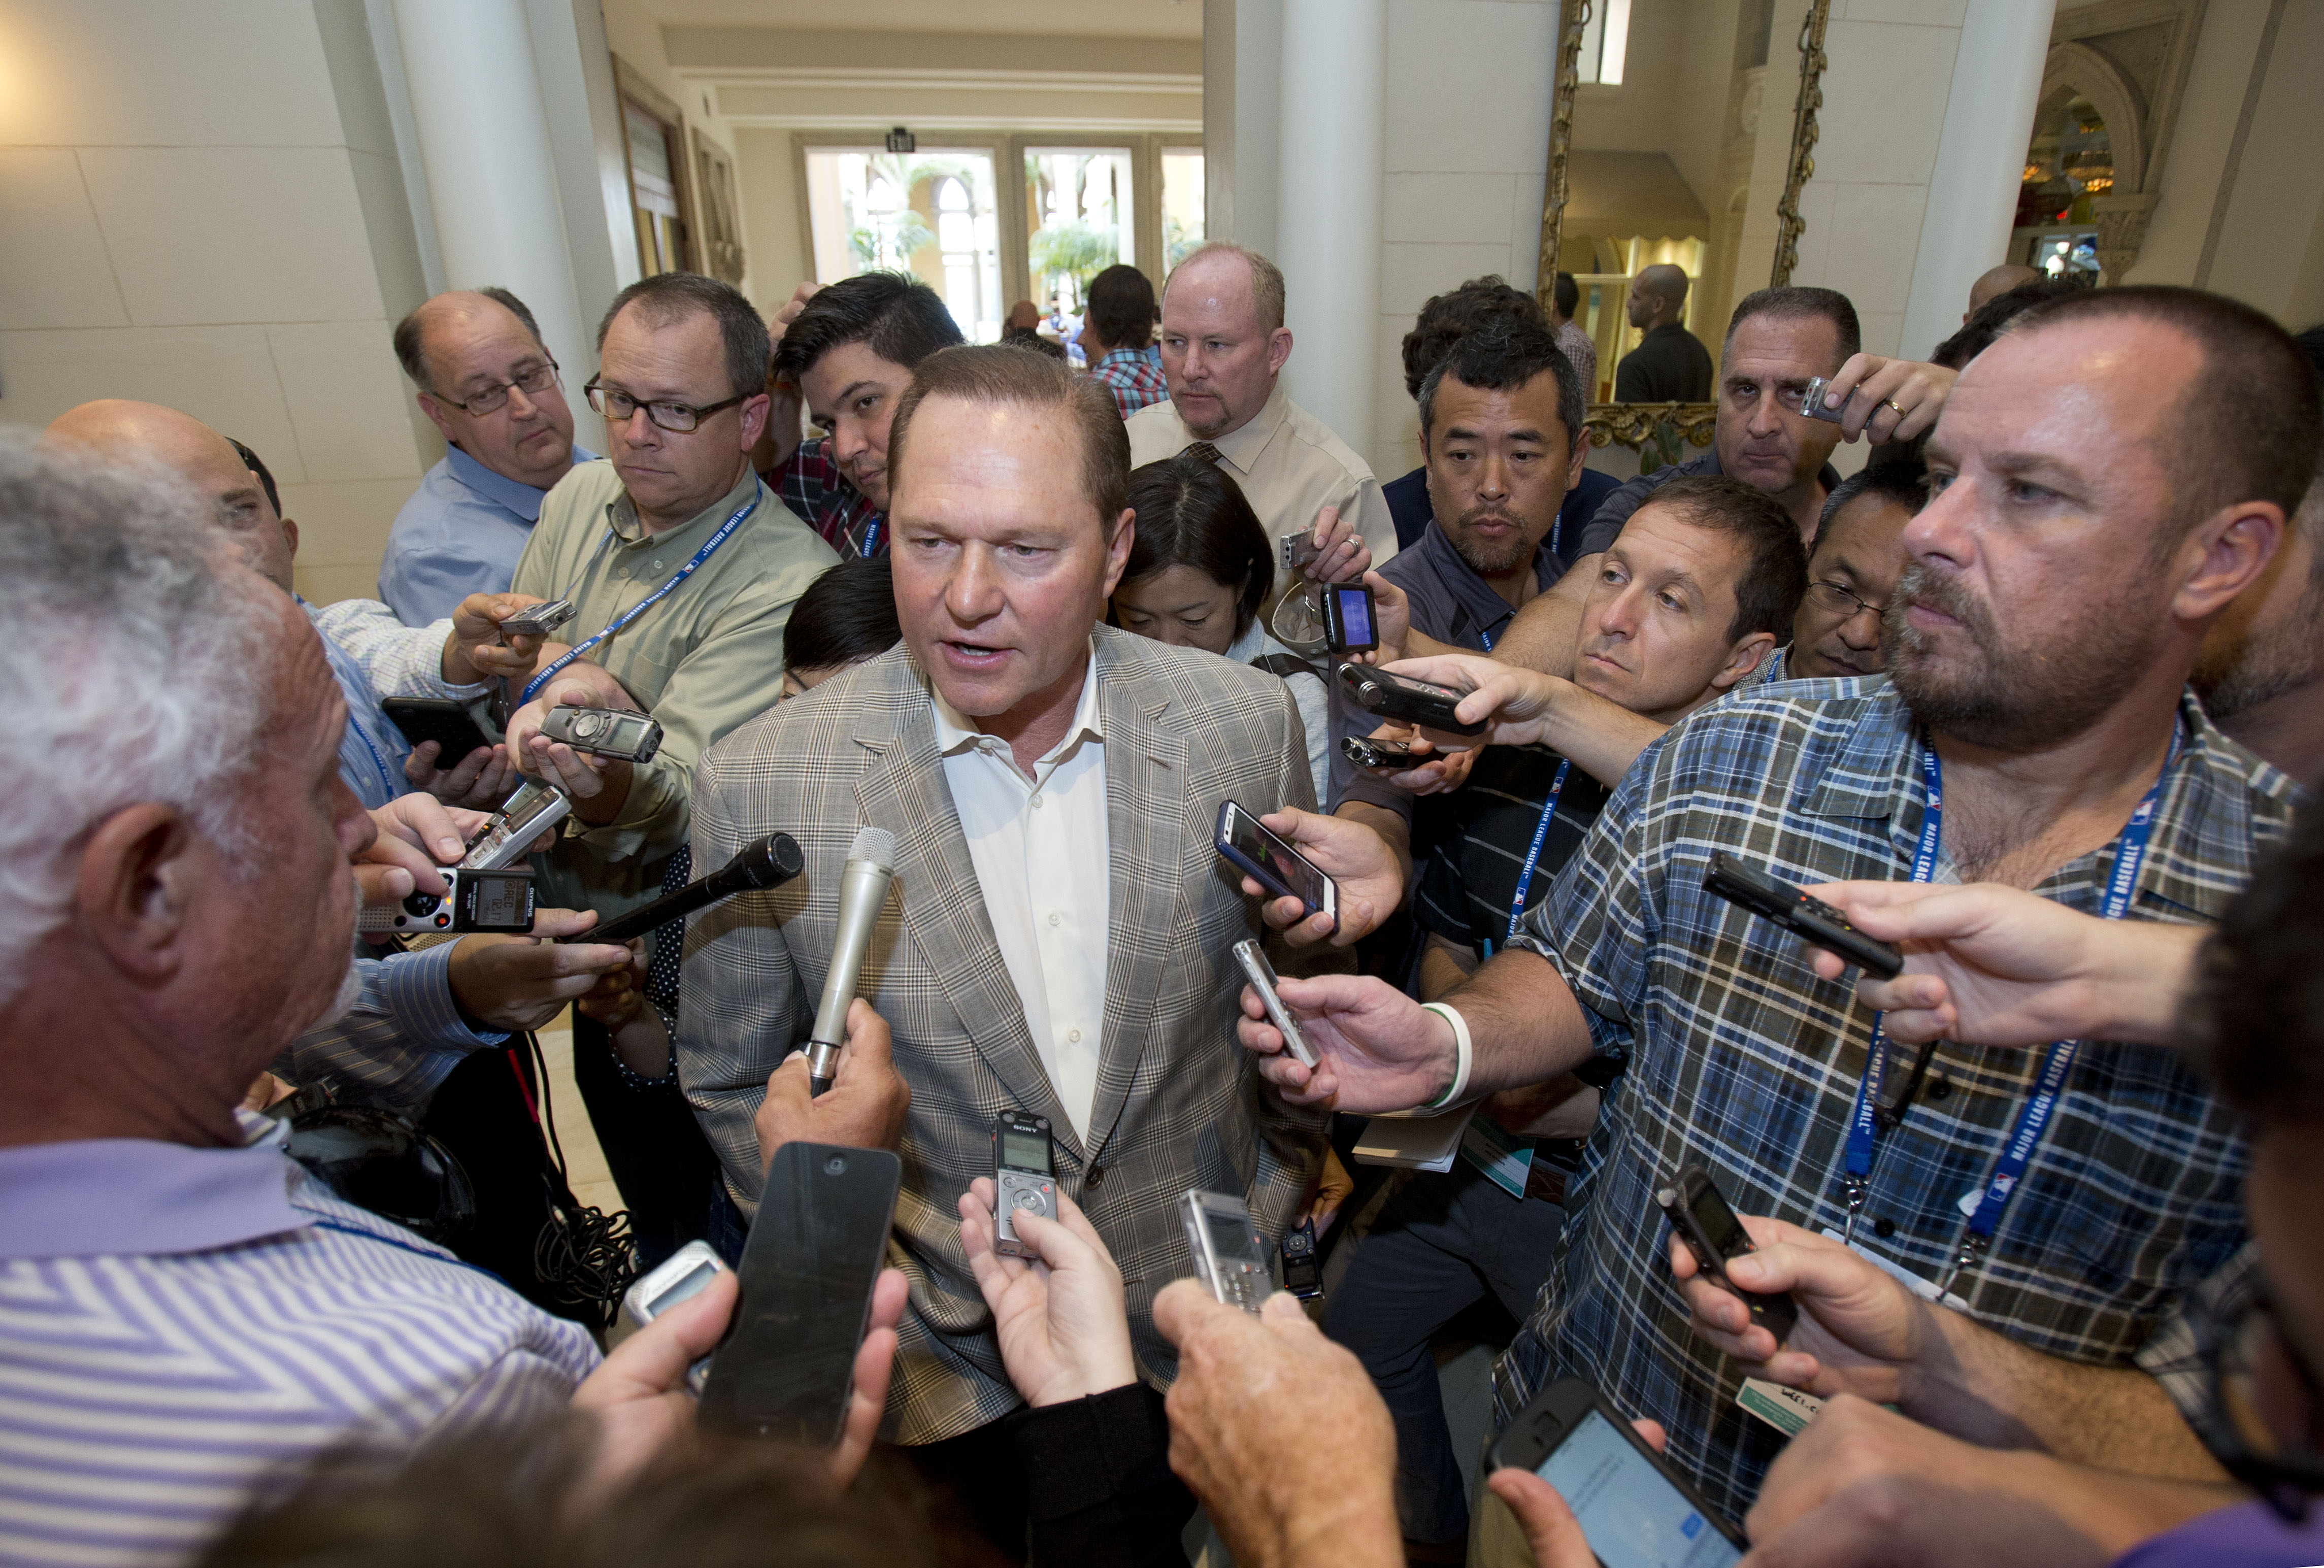 Sports agent Scott Boras, center, speaks to reporters at the baseball general managers' meetings, Wednesday, Nov. 11, 2015, in Boca Raton, Fla. (AP Photo/Wilfredo Lee)